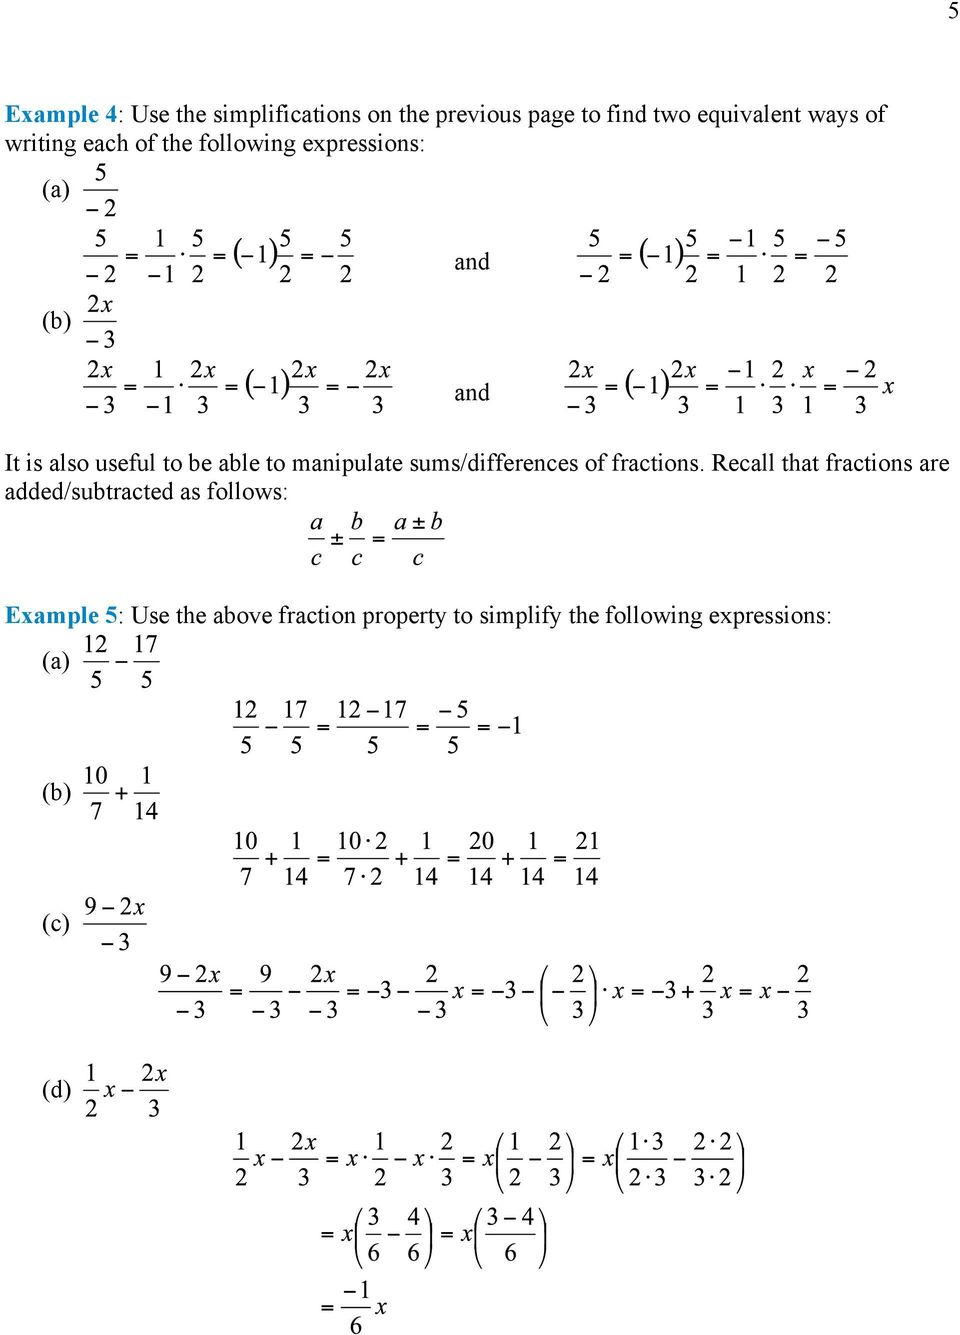 manipulate sums/differences of fractions.